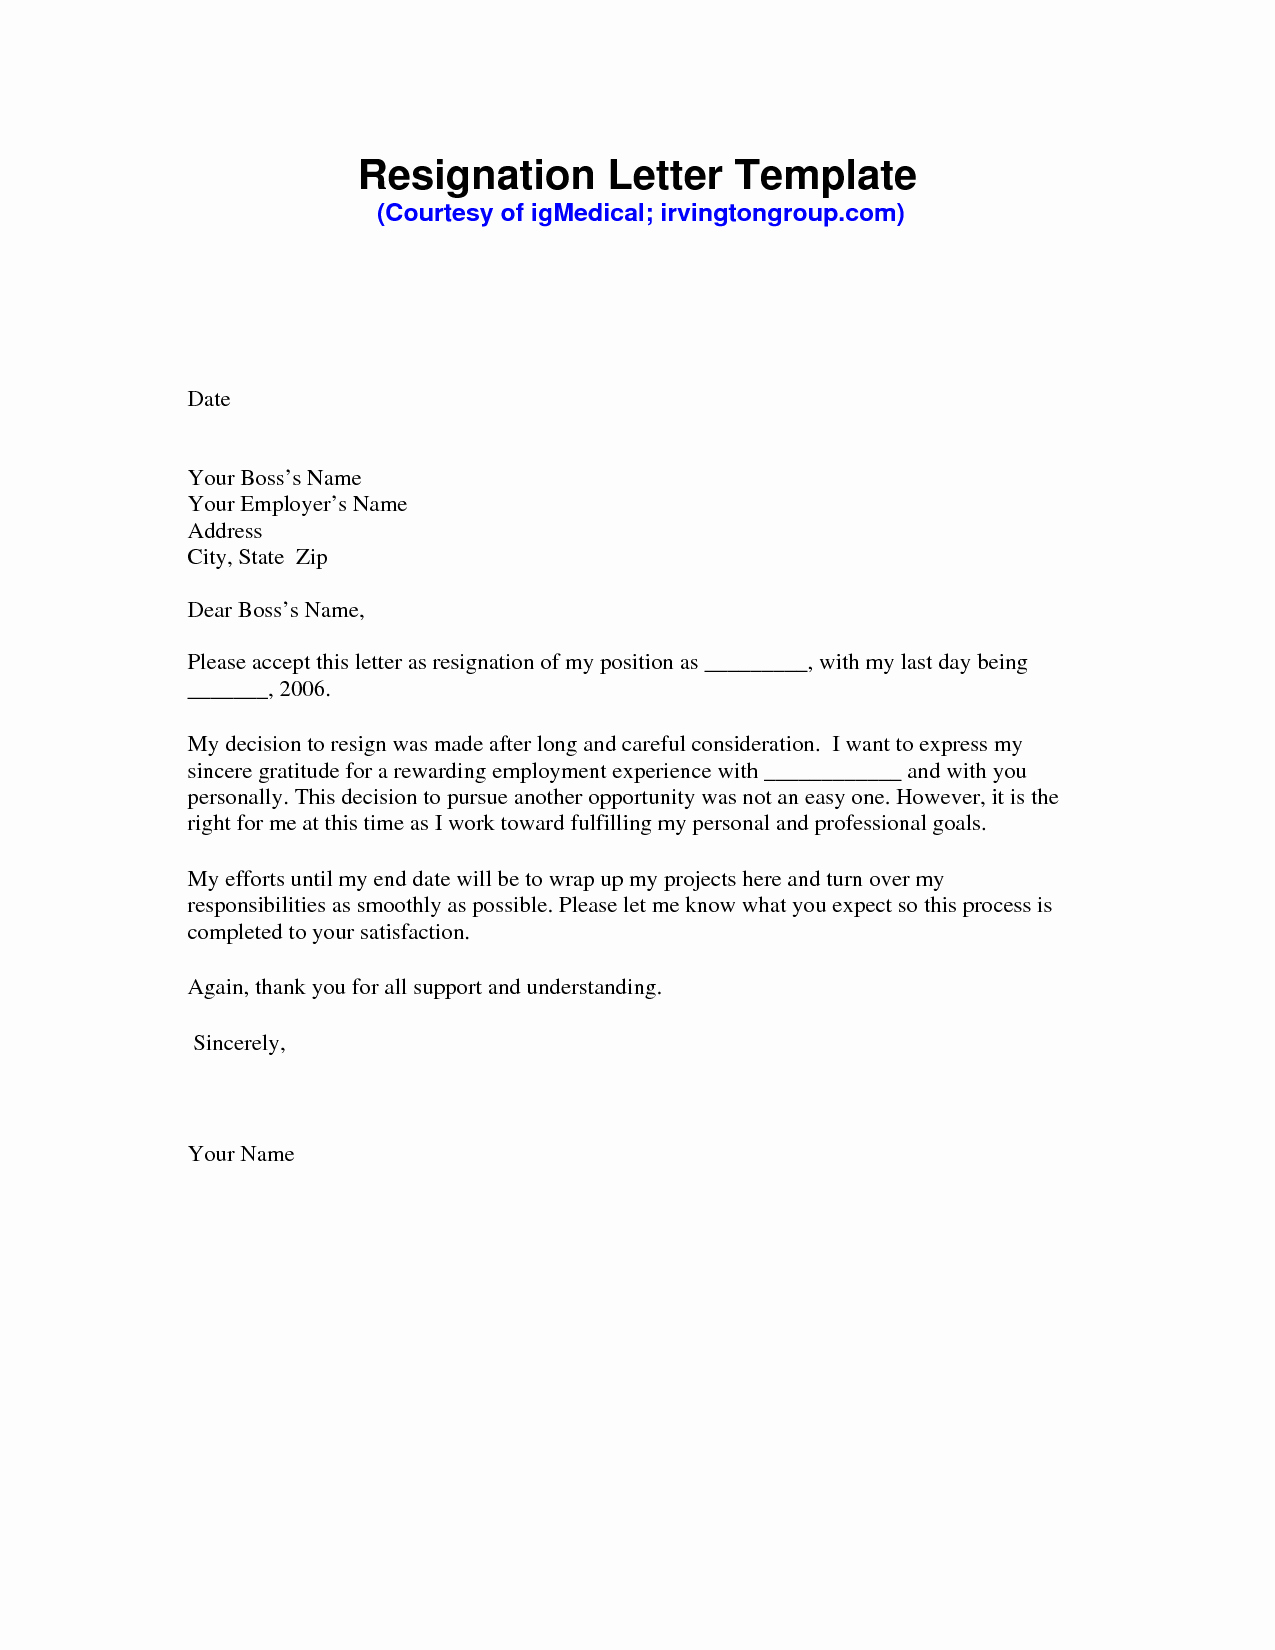 Letter Of Resignation Templates Word Fresh Resignation Letter Sample Pdf